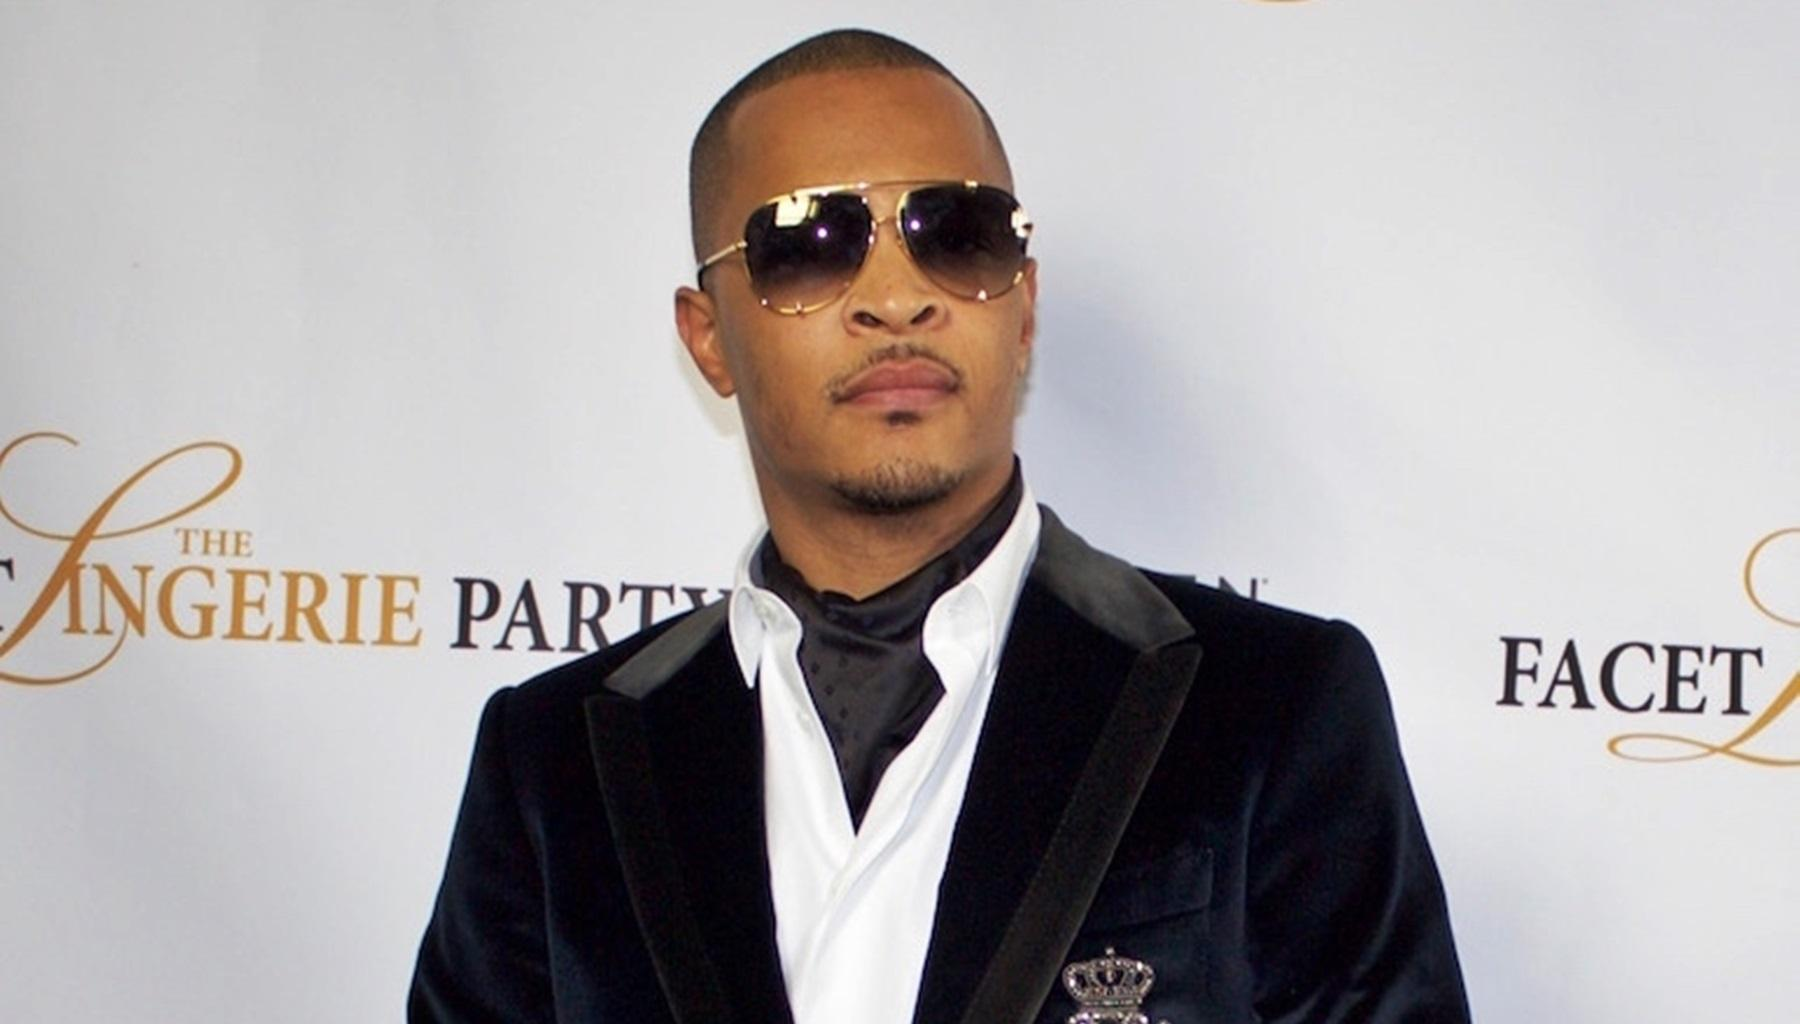 T.I. Gets Nick Cannon To Reveal The Impact That His Divorce From Mariah Carey Has On His Life In New Video -- Tiny Harris' Husband Handled The Exchange In A Smooth Way